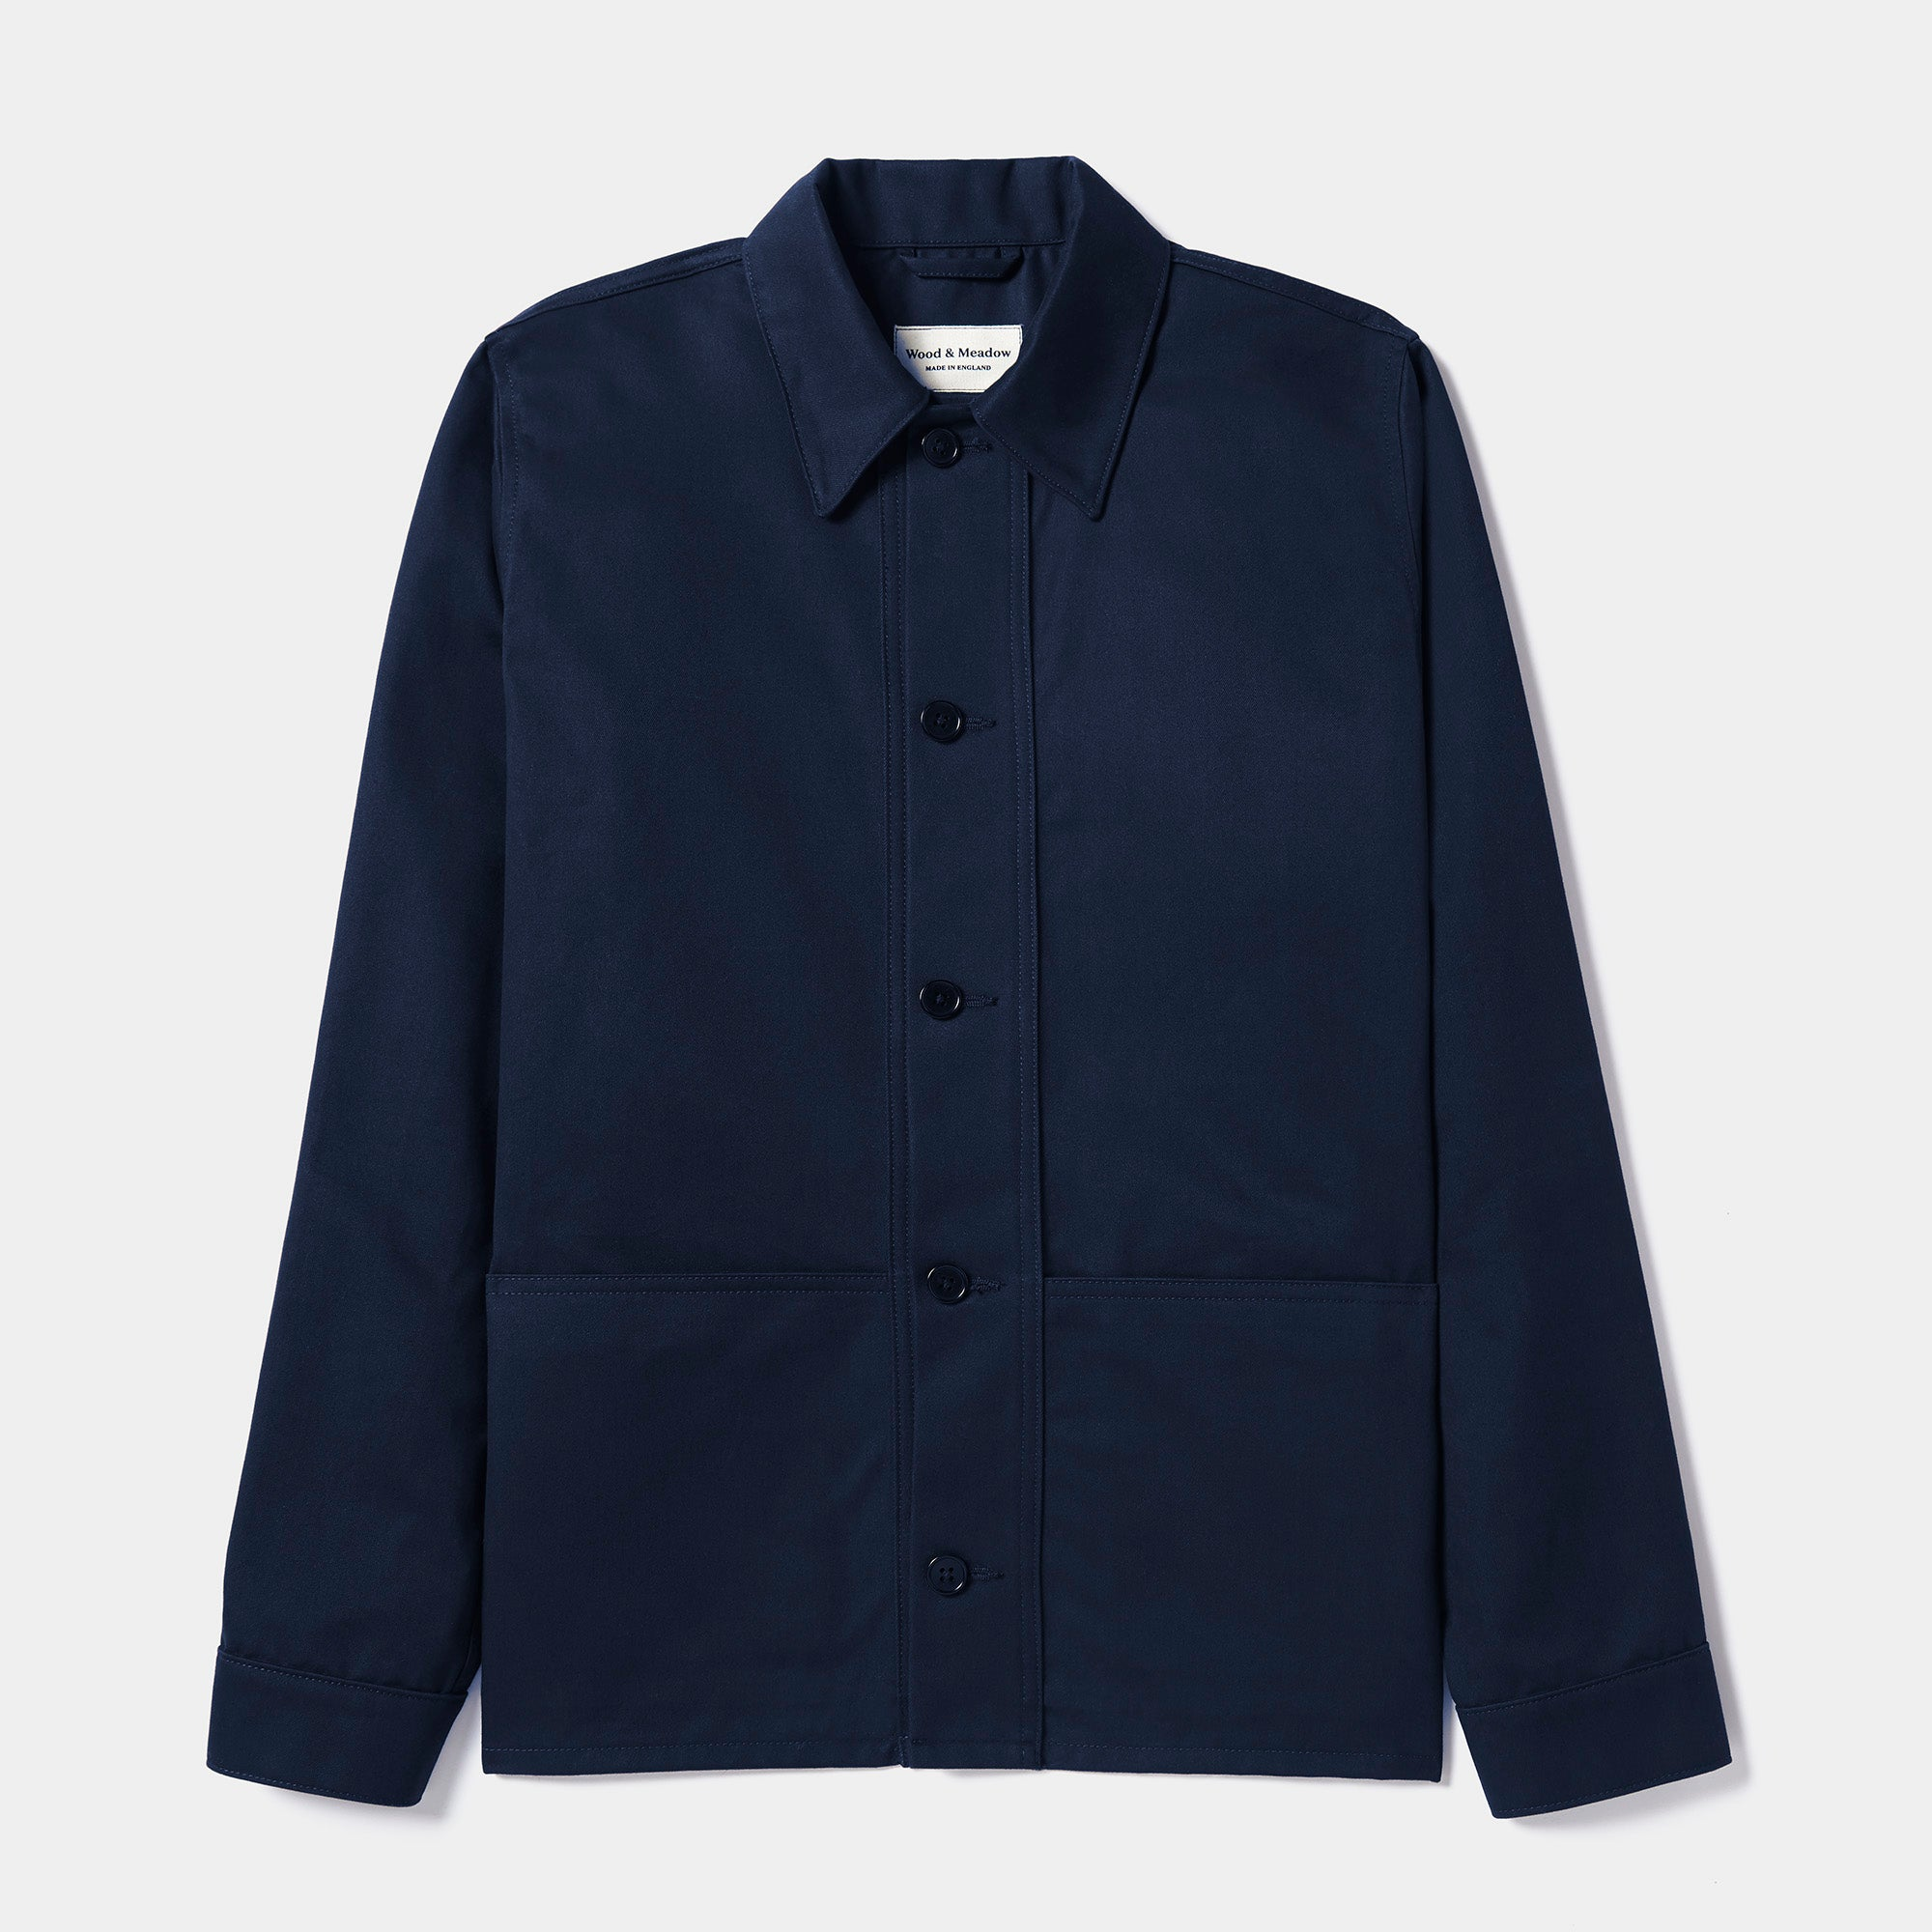 Wood & Meadow Work Jacket in Dark Navy Drill